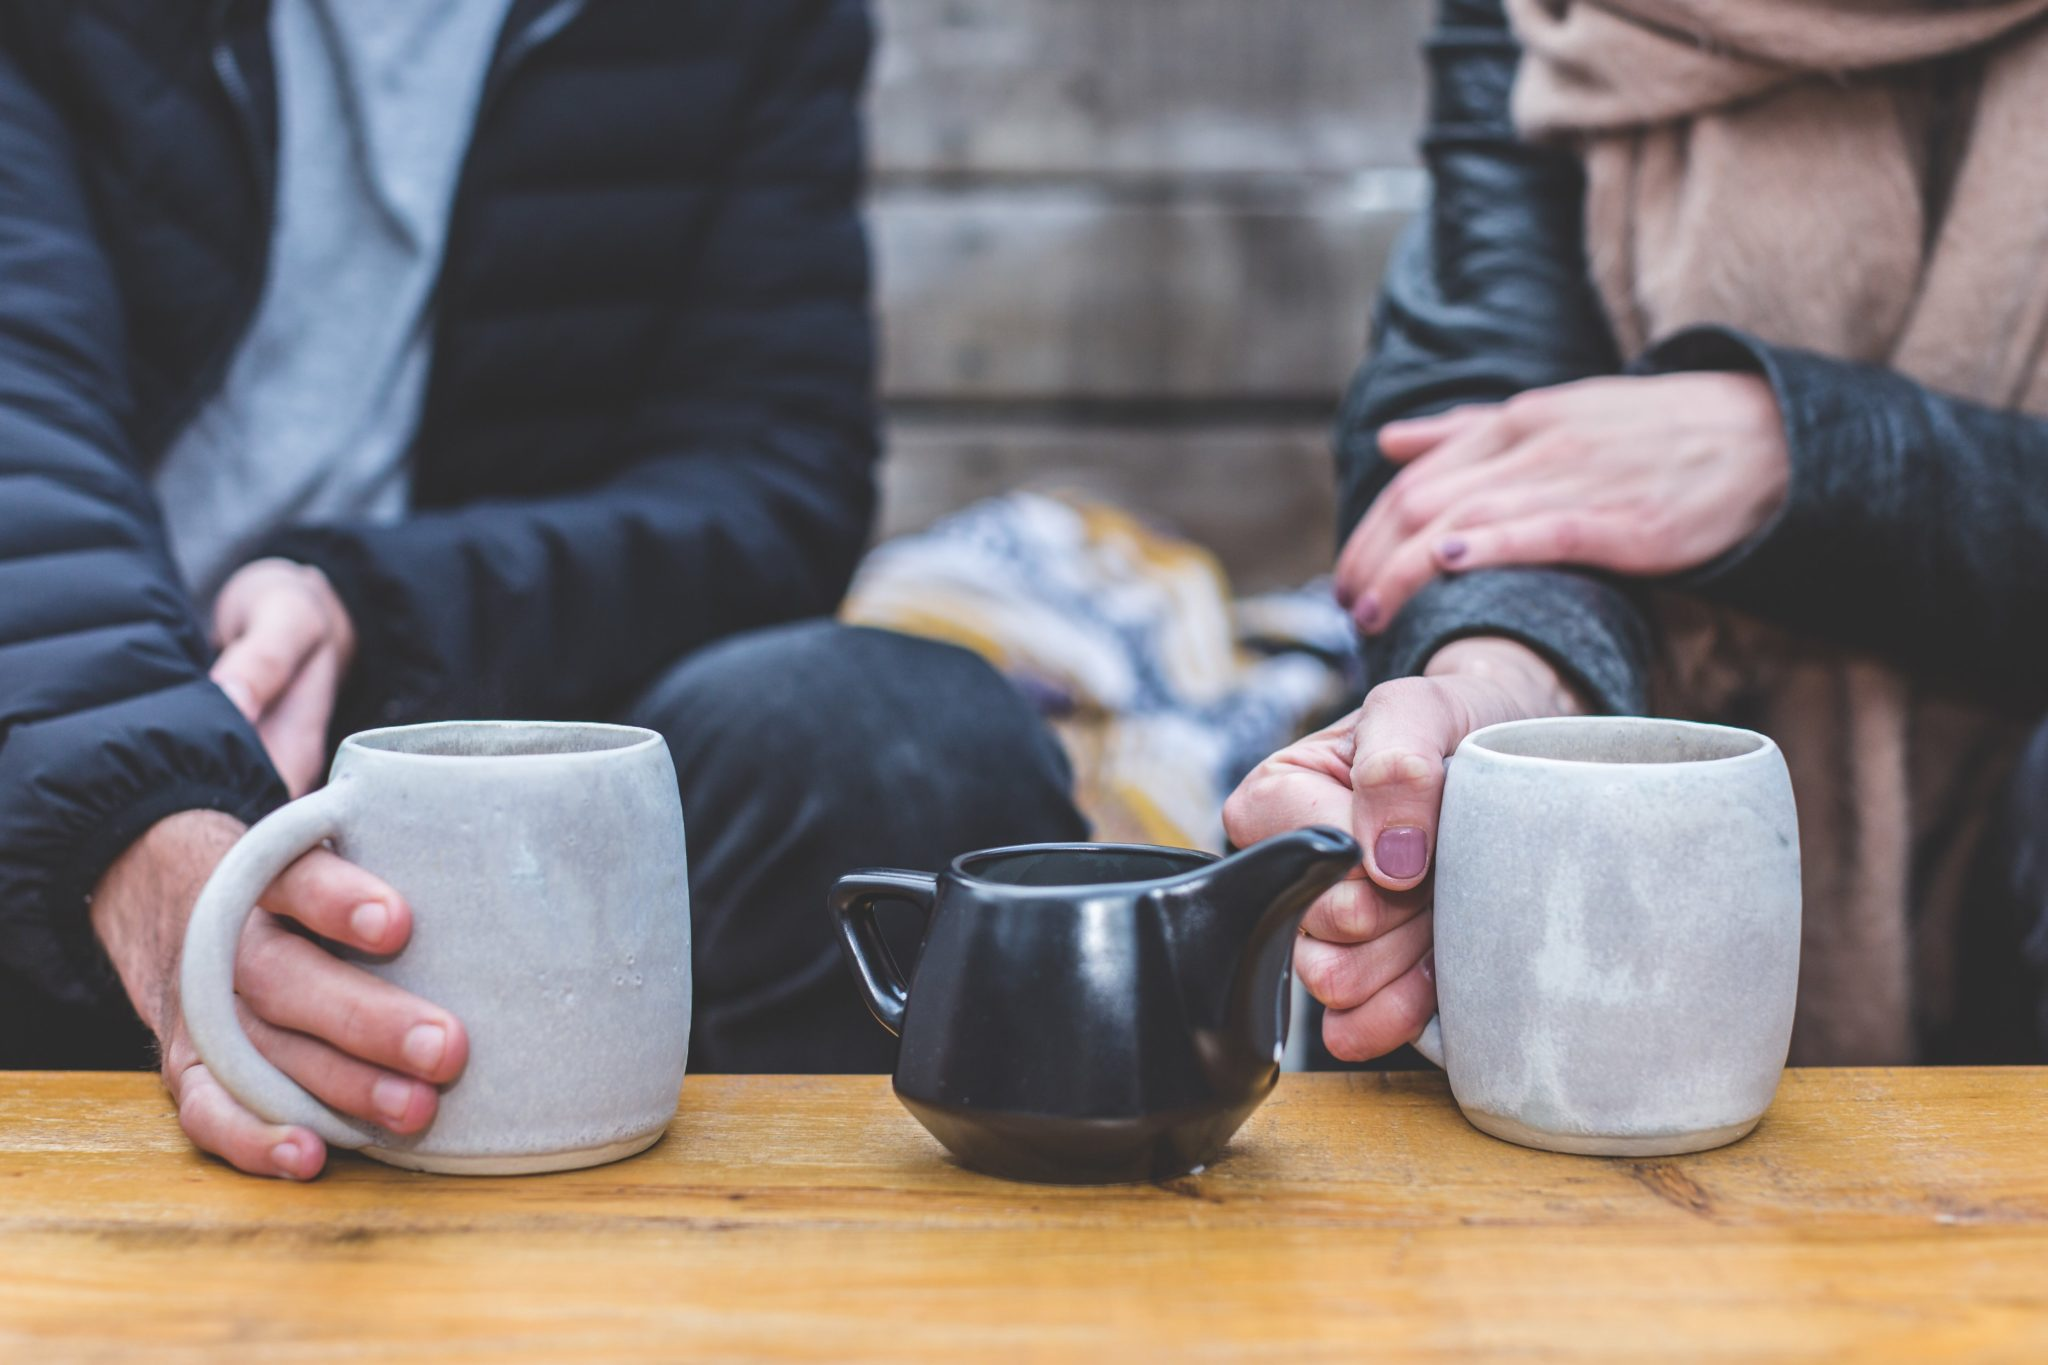 Couple with cups of coffee and creamer between them